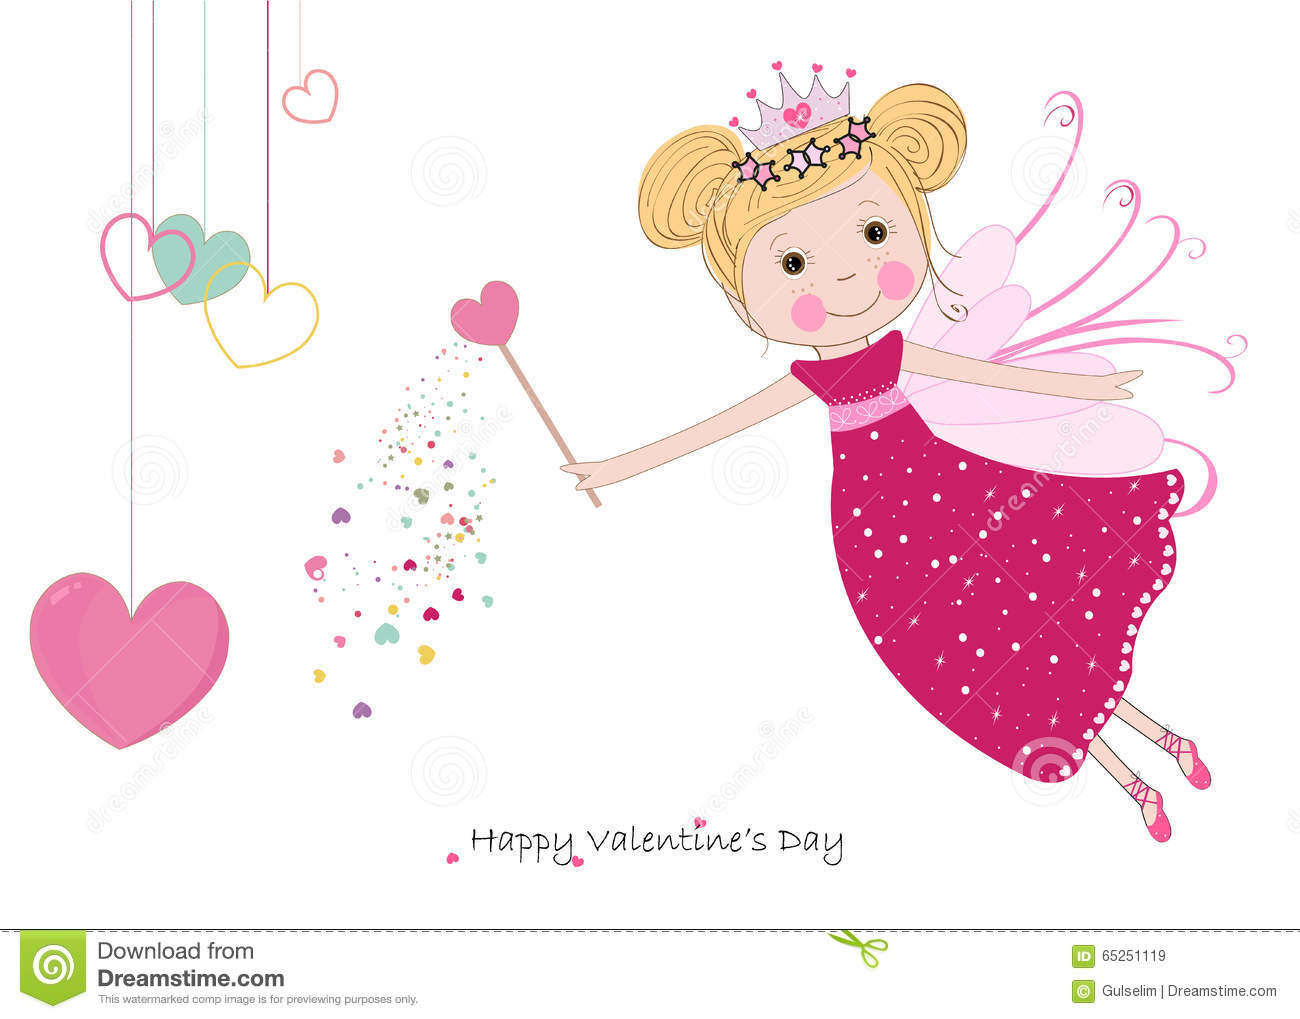 Cute Fairy Tale With Hanging Hearts Happy Valentine S Day Greeting